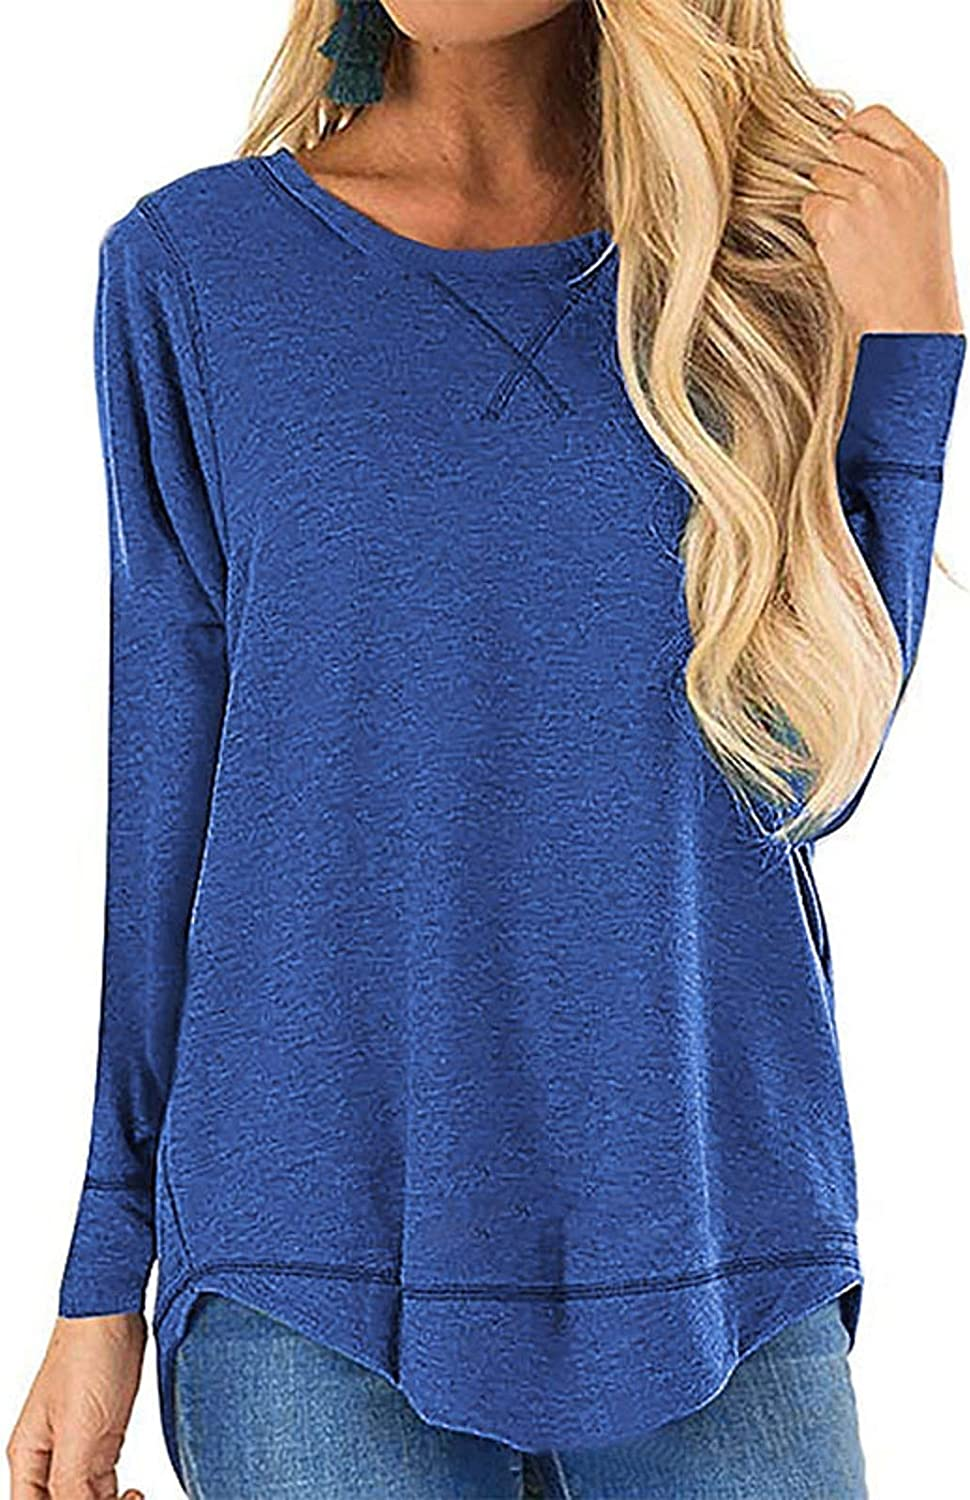 ANFTFH Long Sleeve Casual Blouses Tops Crewneck Solid Color Sweatshirt Loose Fall Shirts Women